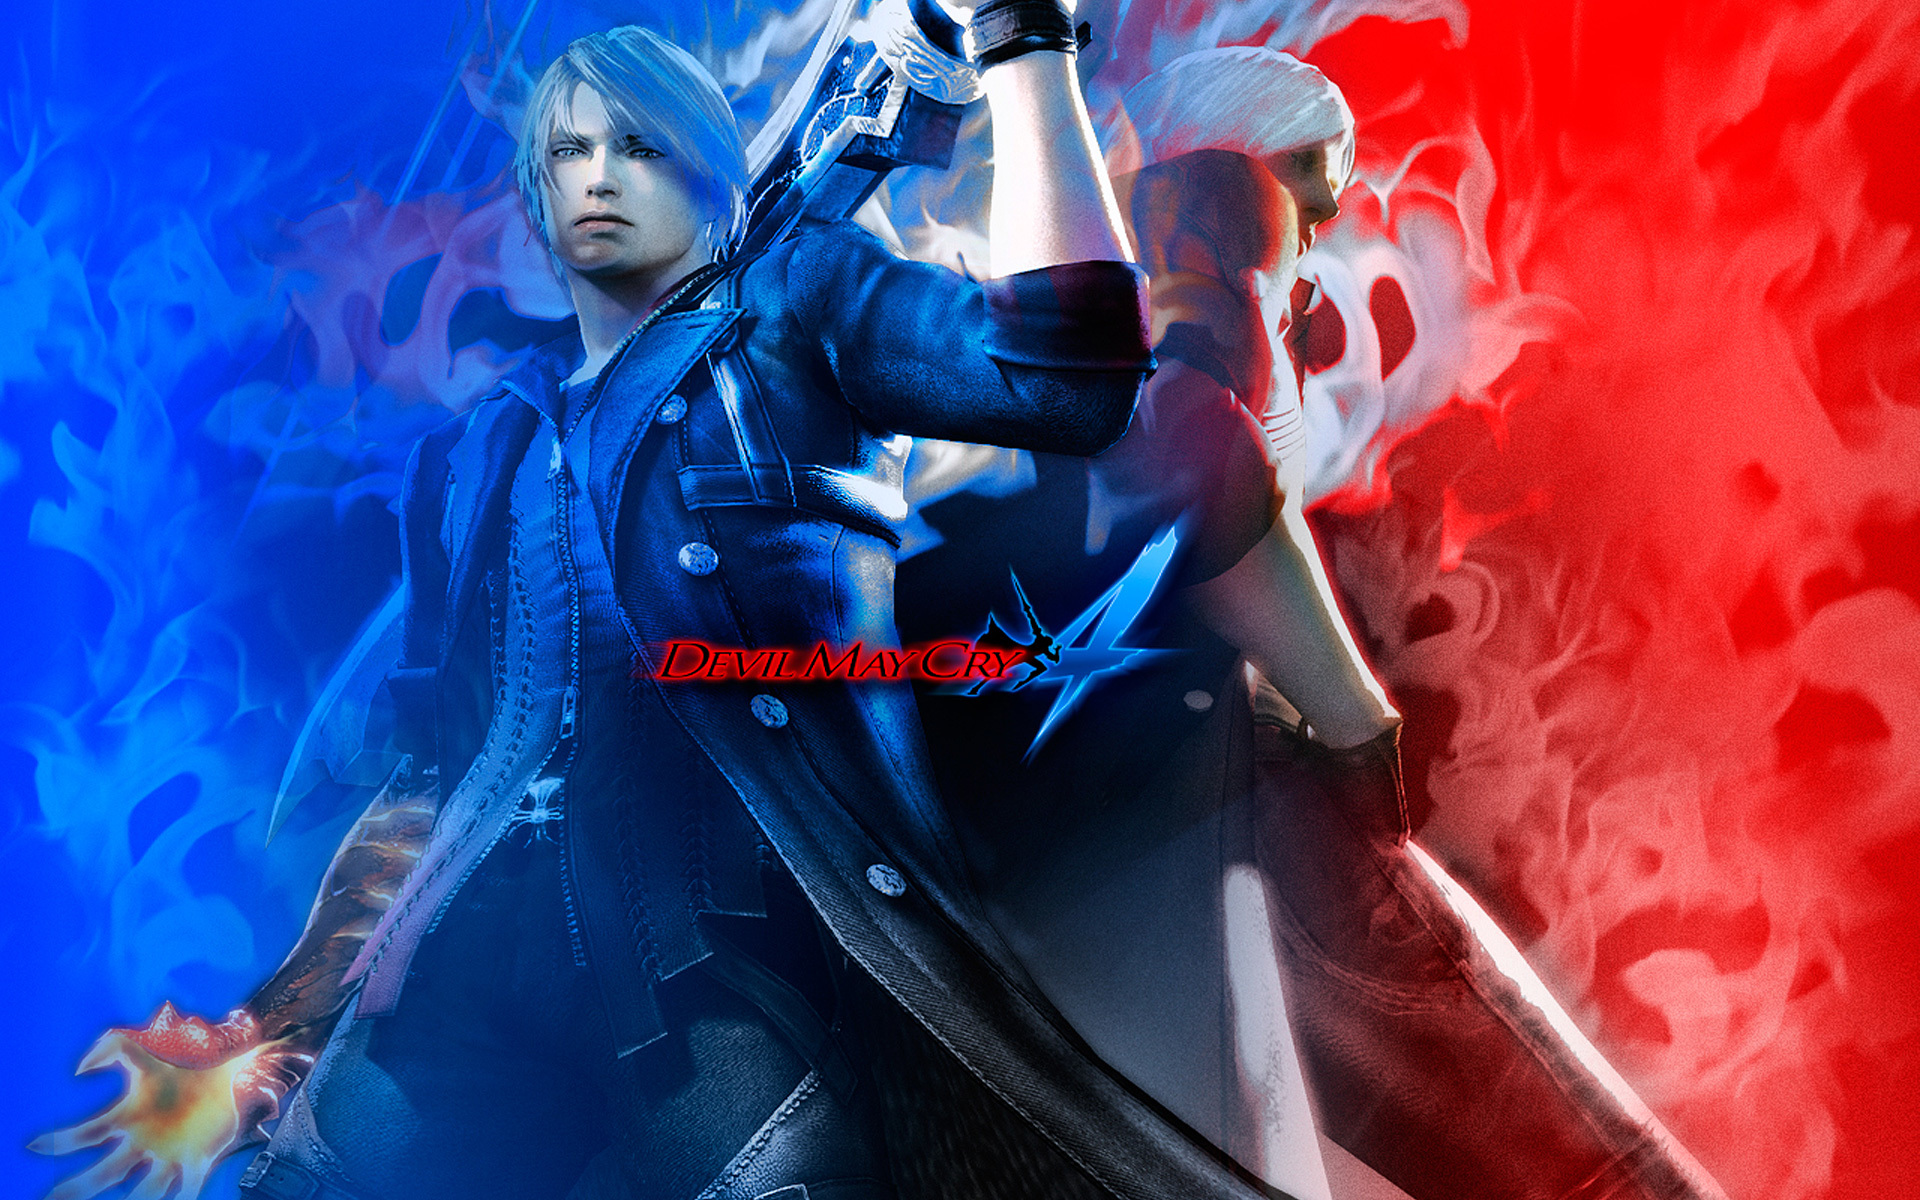 devil May cry Anime HD Wallpaper